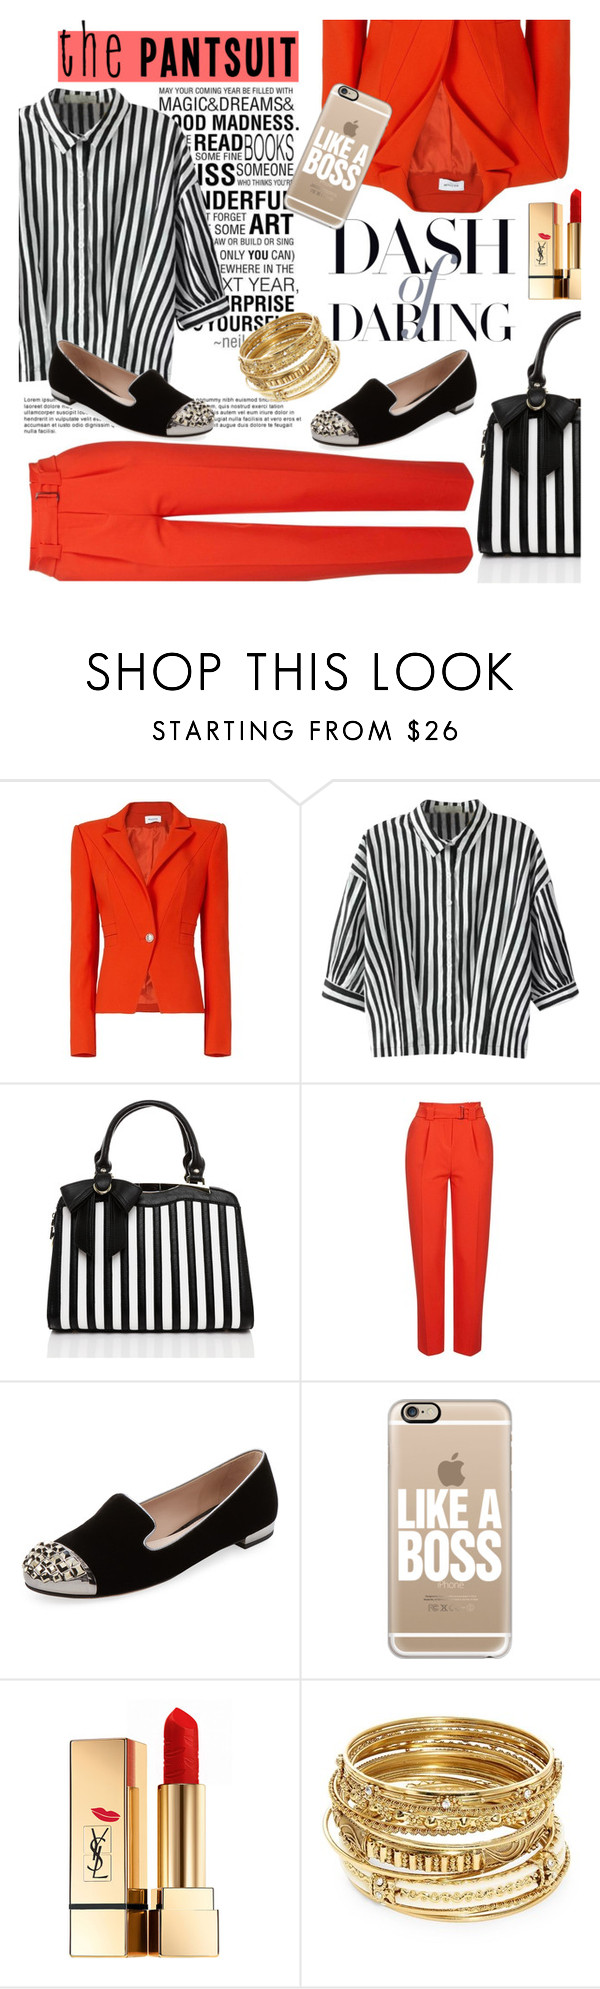 """Pantsuit (2)"" by emhenry ❤ liked on Polyvore featuring Thierry Mugler, Love Quotes Scarves, Relaxfeel, Topshop, Miu Miu, Casetify, Yves Saint Laurent and ABS by Allen Schwartz"